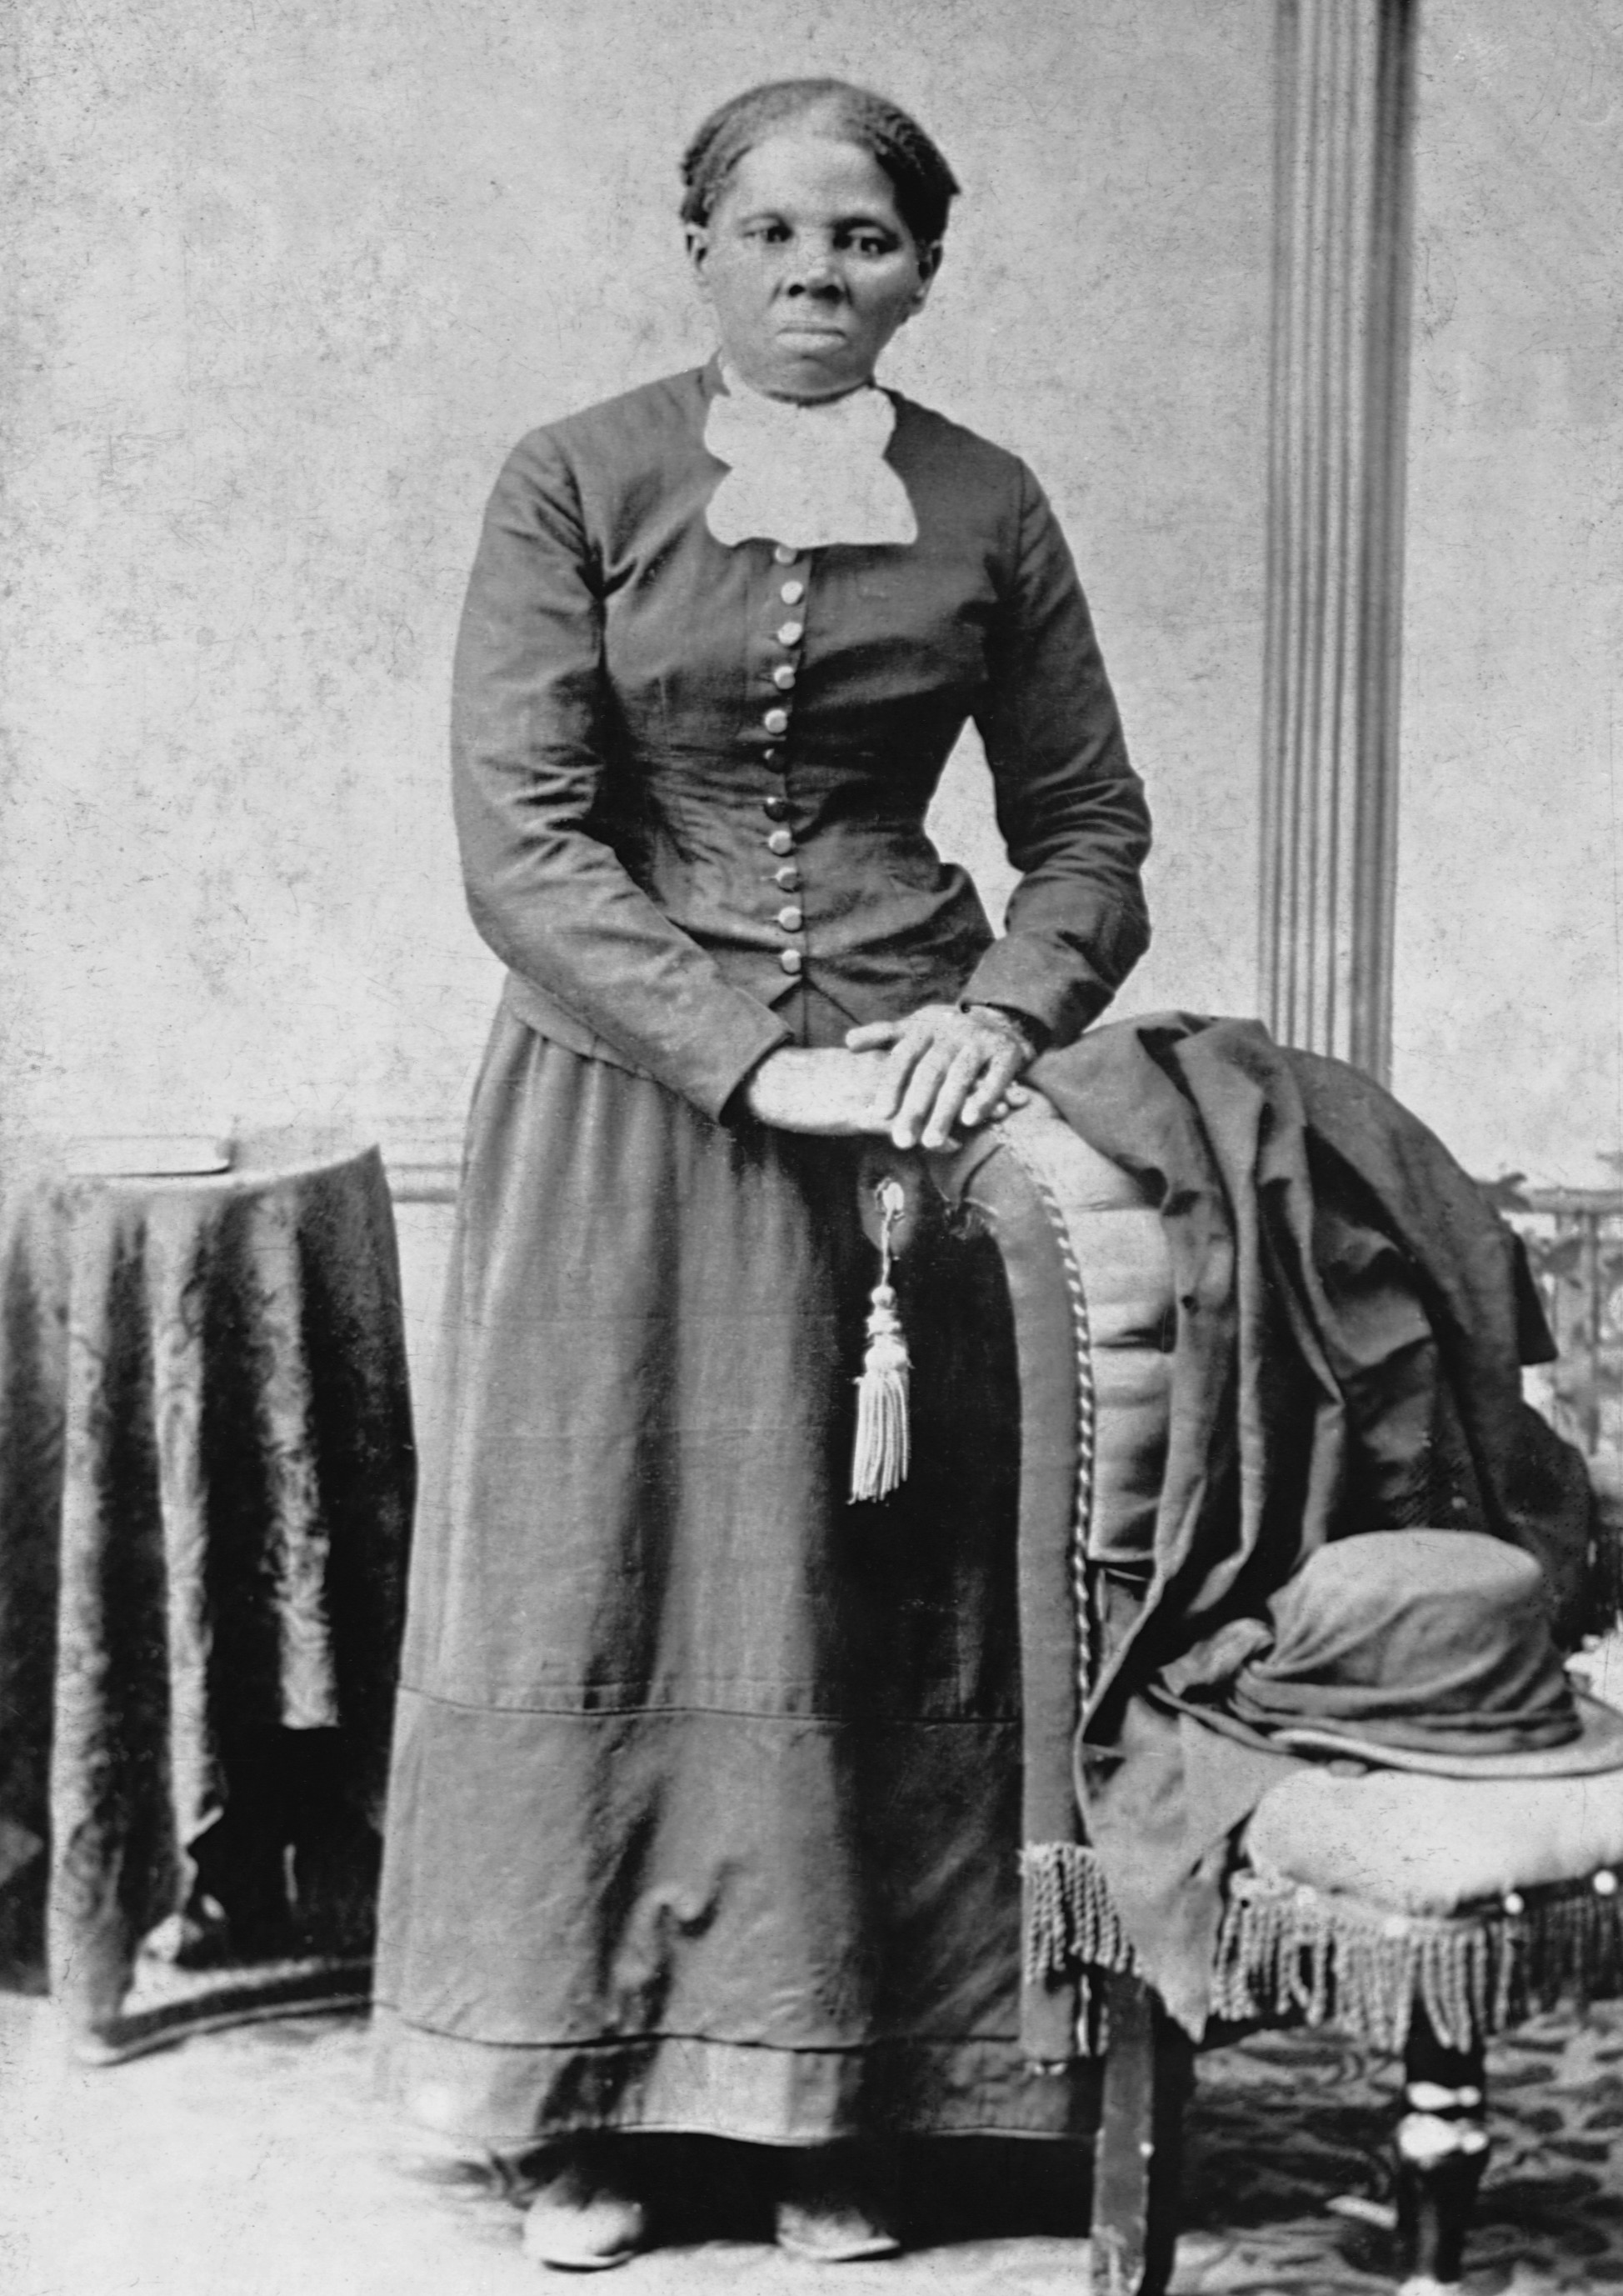 <strong>Harriet Tubman, the U.S.</strong> Harriet Tubman, who was born a slave in 1820, fled Maryland for the free state of Pennsylvania. Over the years, she went on 19 missions to rescue more than 300 slaves on the Underground Railroad. During the Civil War, she was the first woman to lead a military expedition, liberating more than 700 slaves.